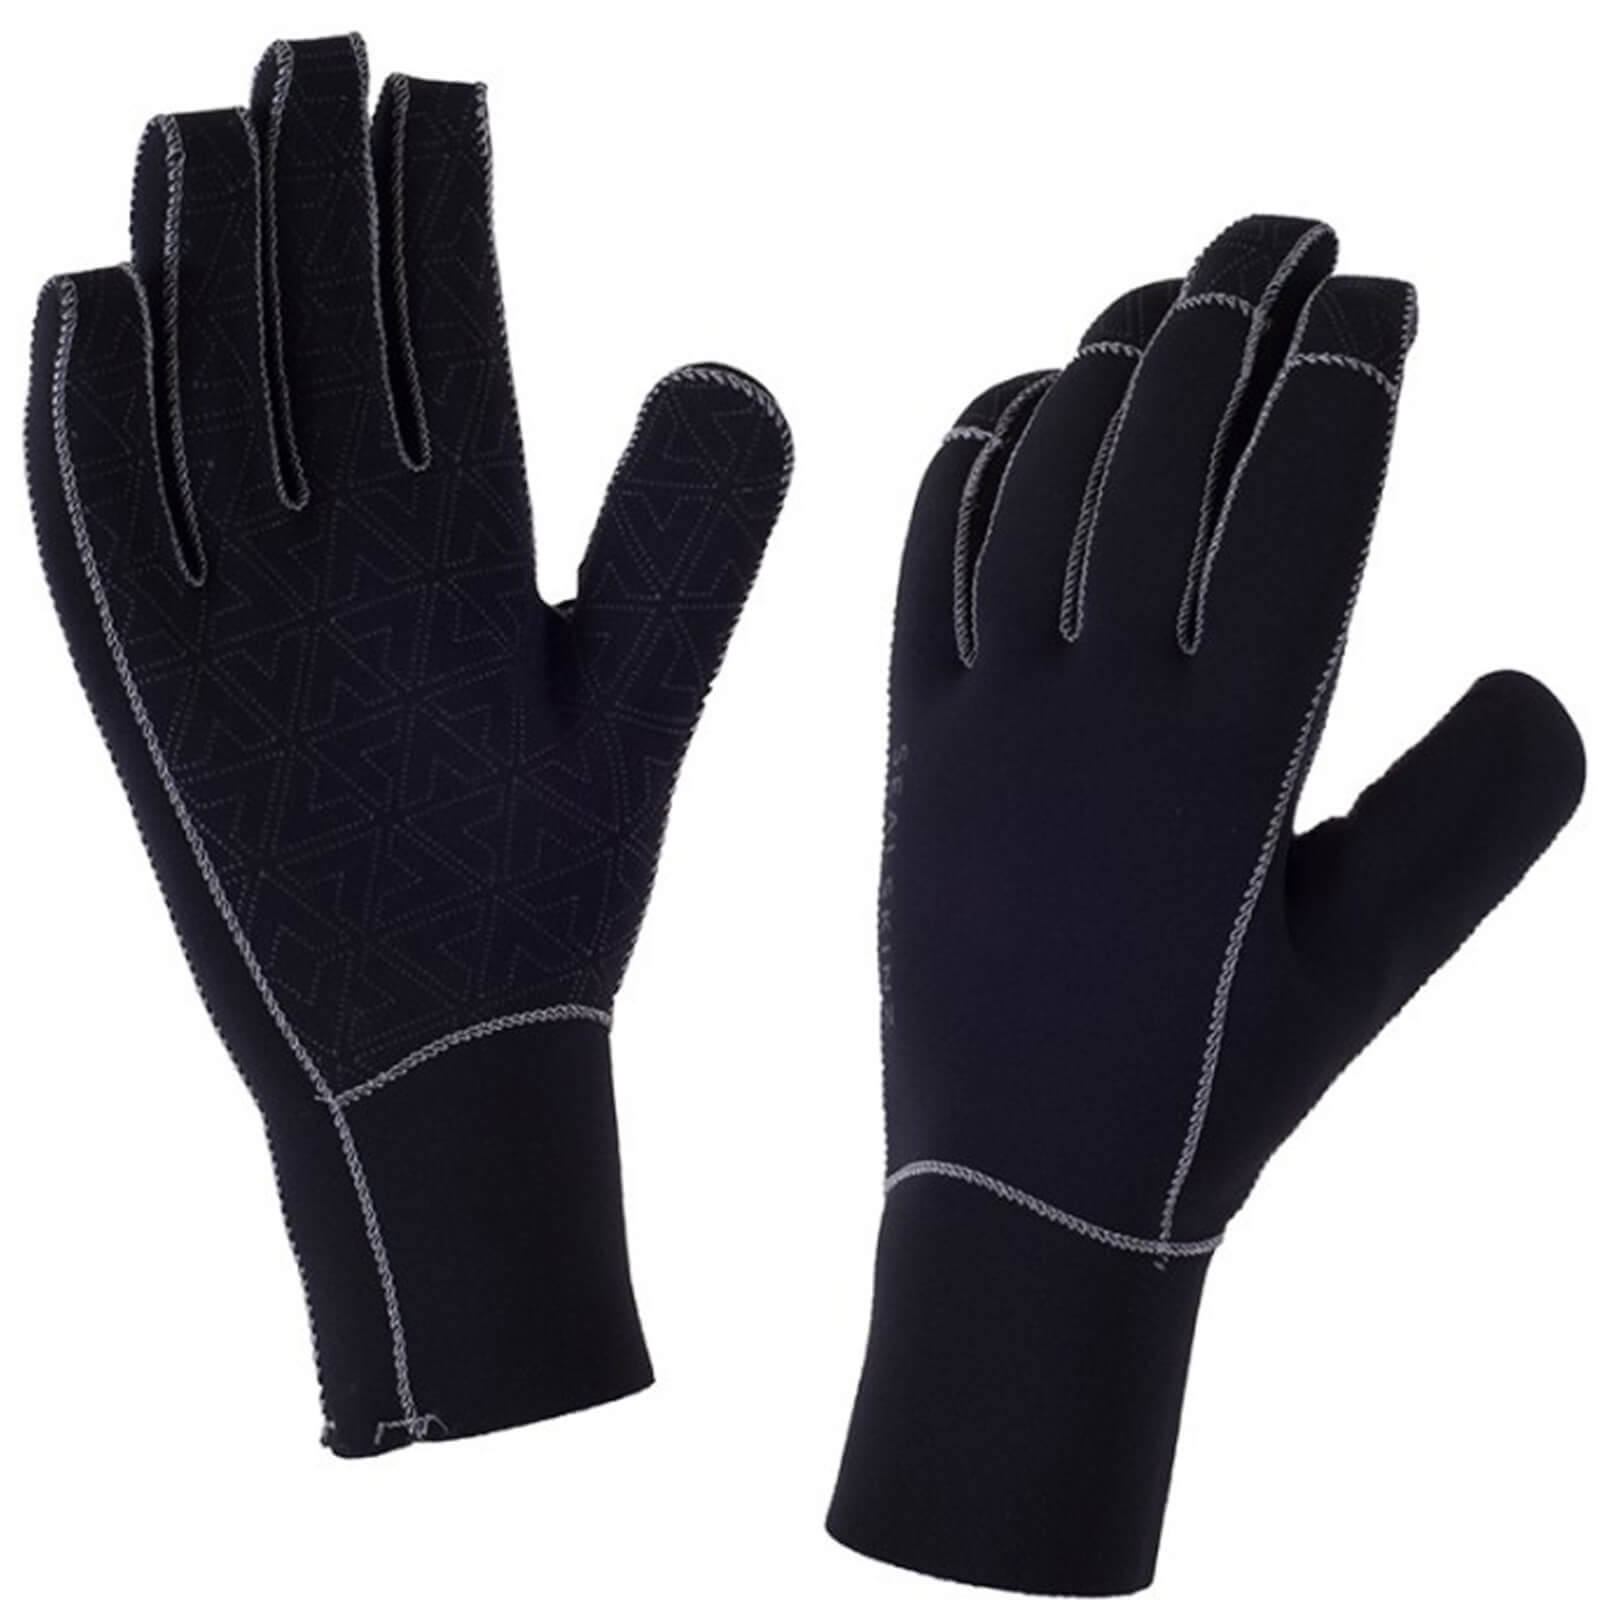 Sealskinz Neoprene Gloves - Black/Grey